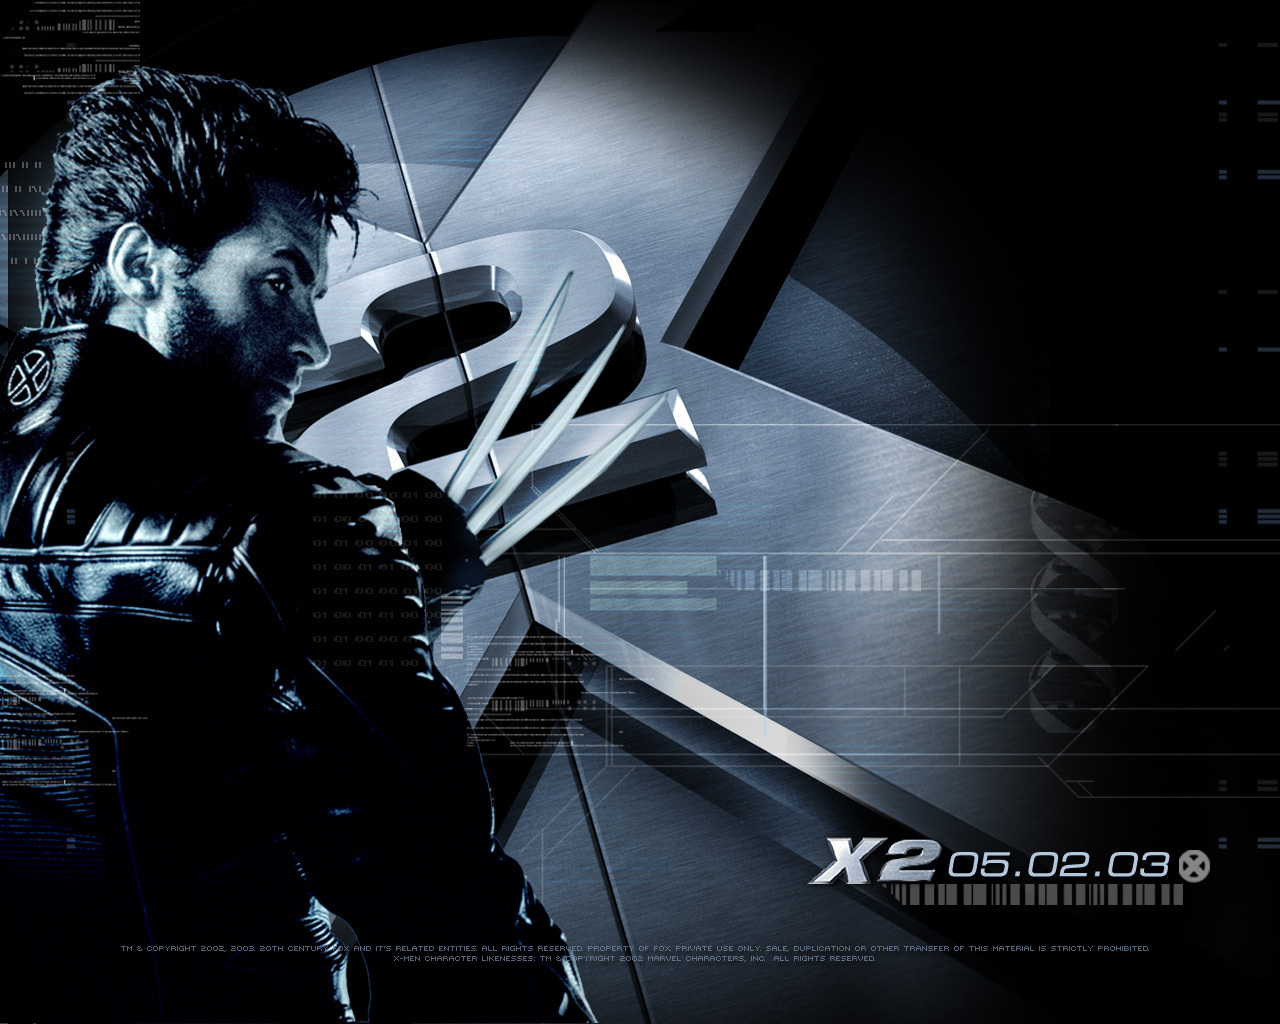 x men the movie x2 wallpapers. Black Bedroom Furniture Sets. Home Design Ideas